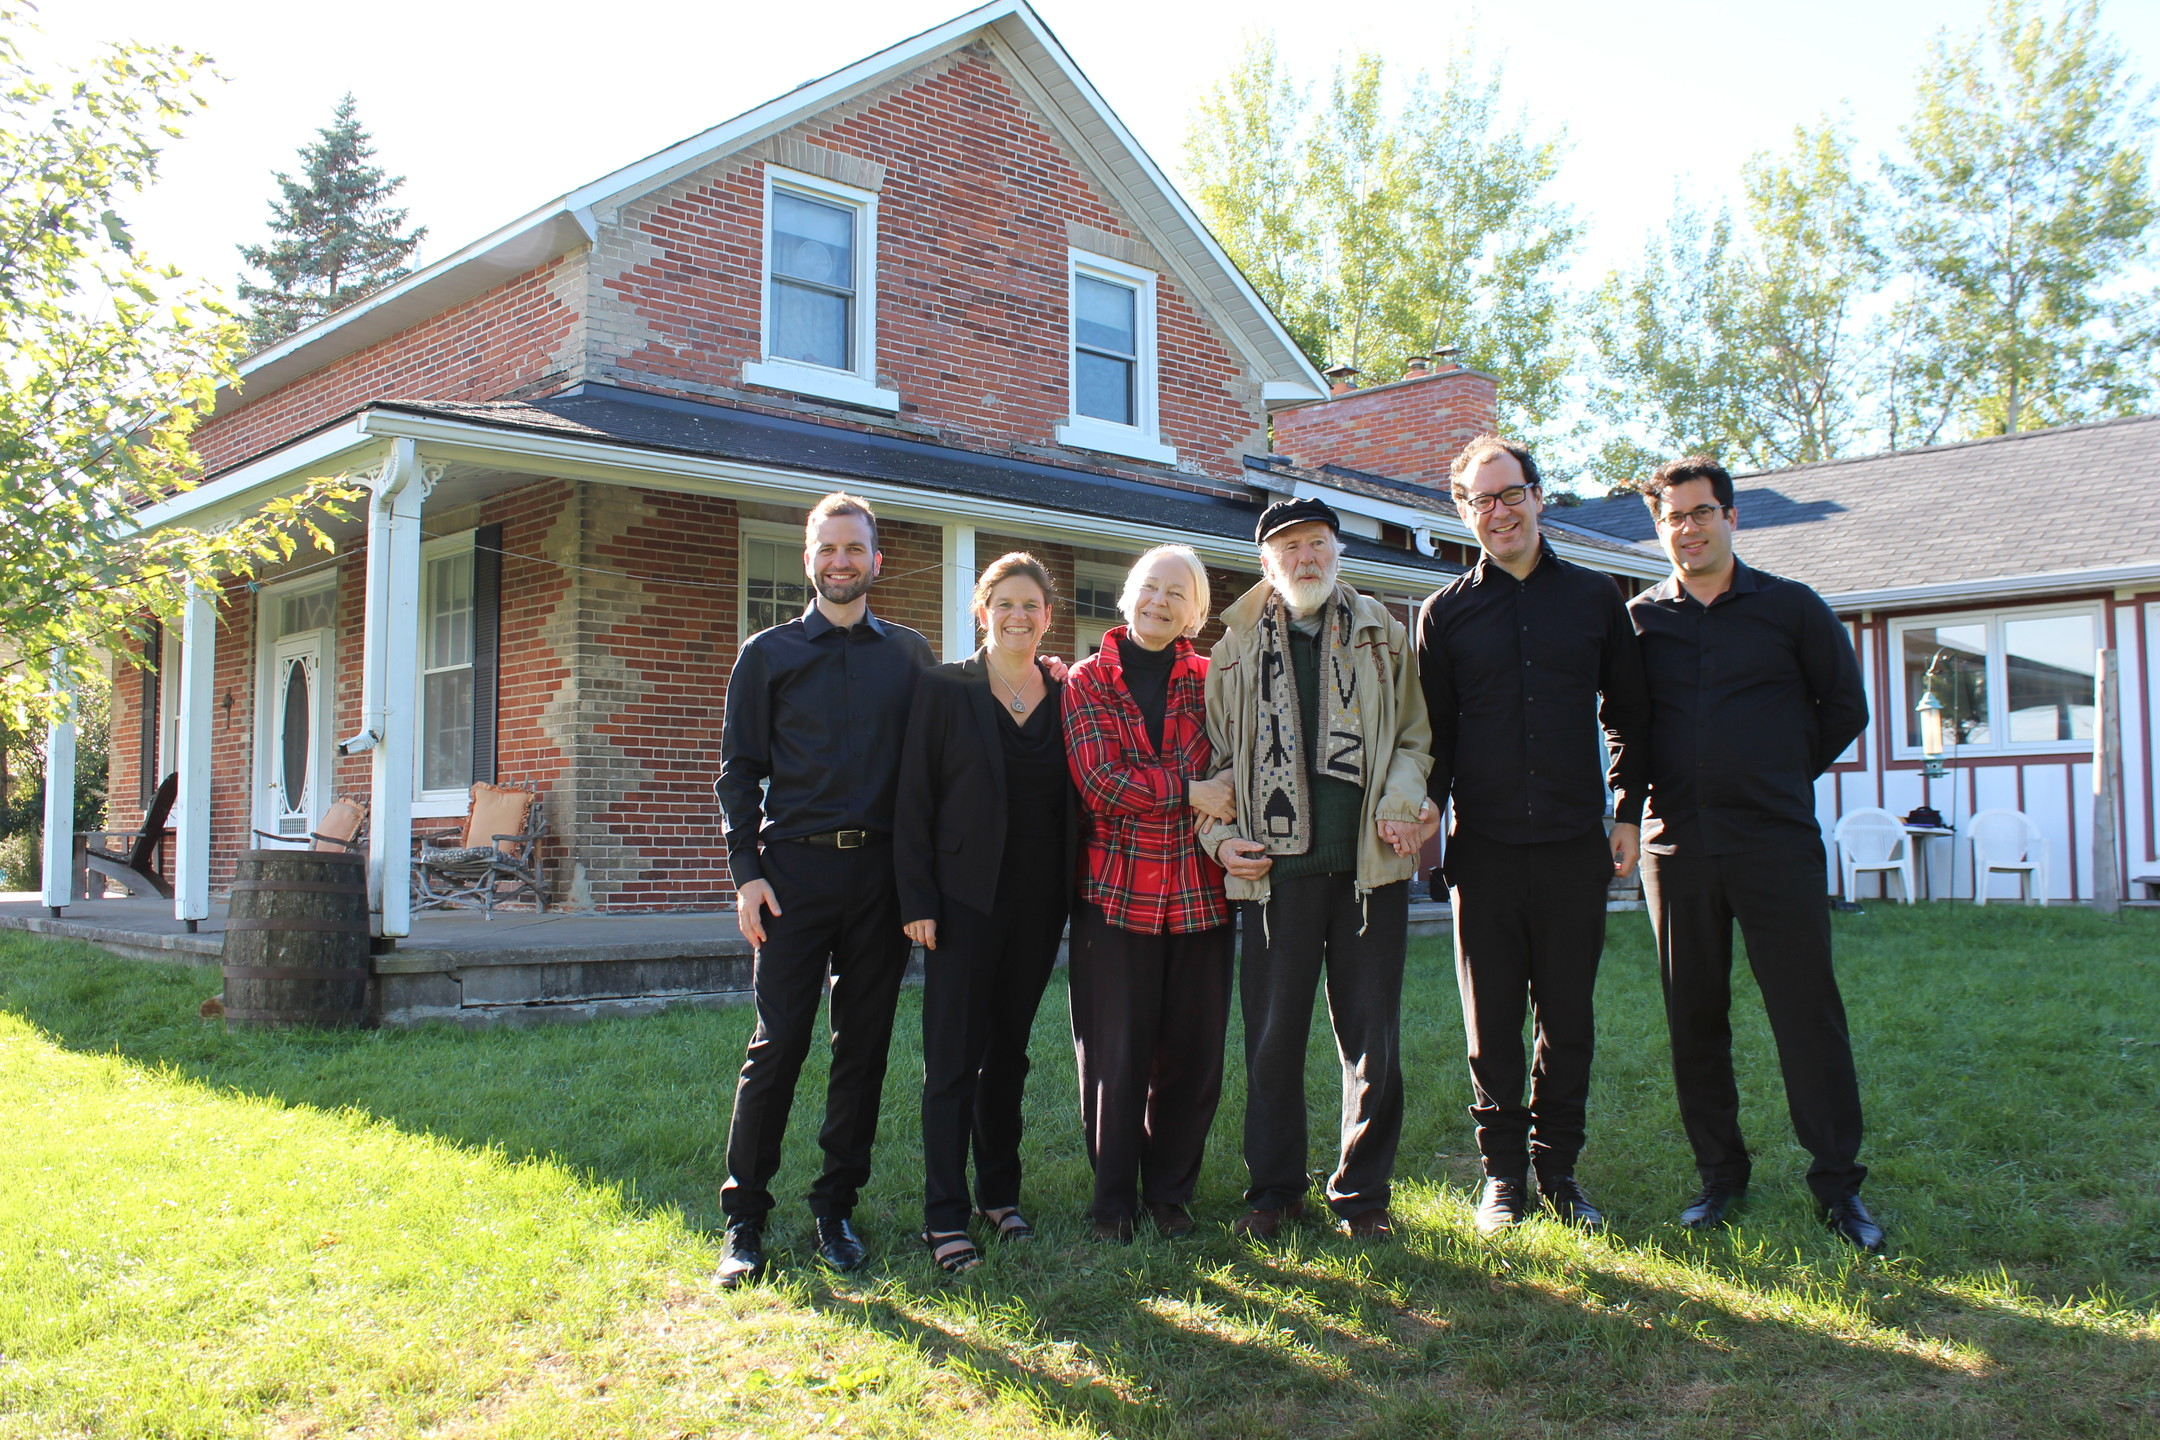 R Murray Schafer and his spouse Eleanor James with the Quatuor Molinari [Indian River (Ontario, Canada), September 23, 2018]